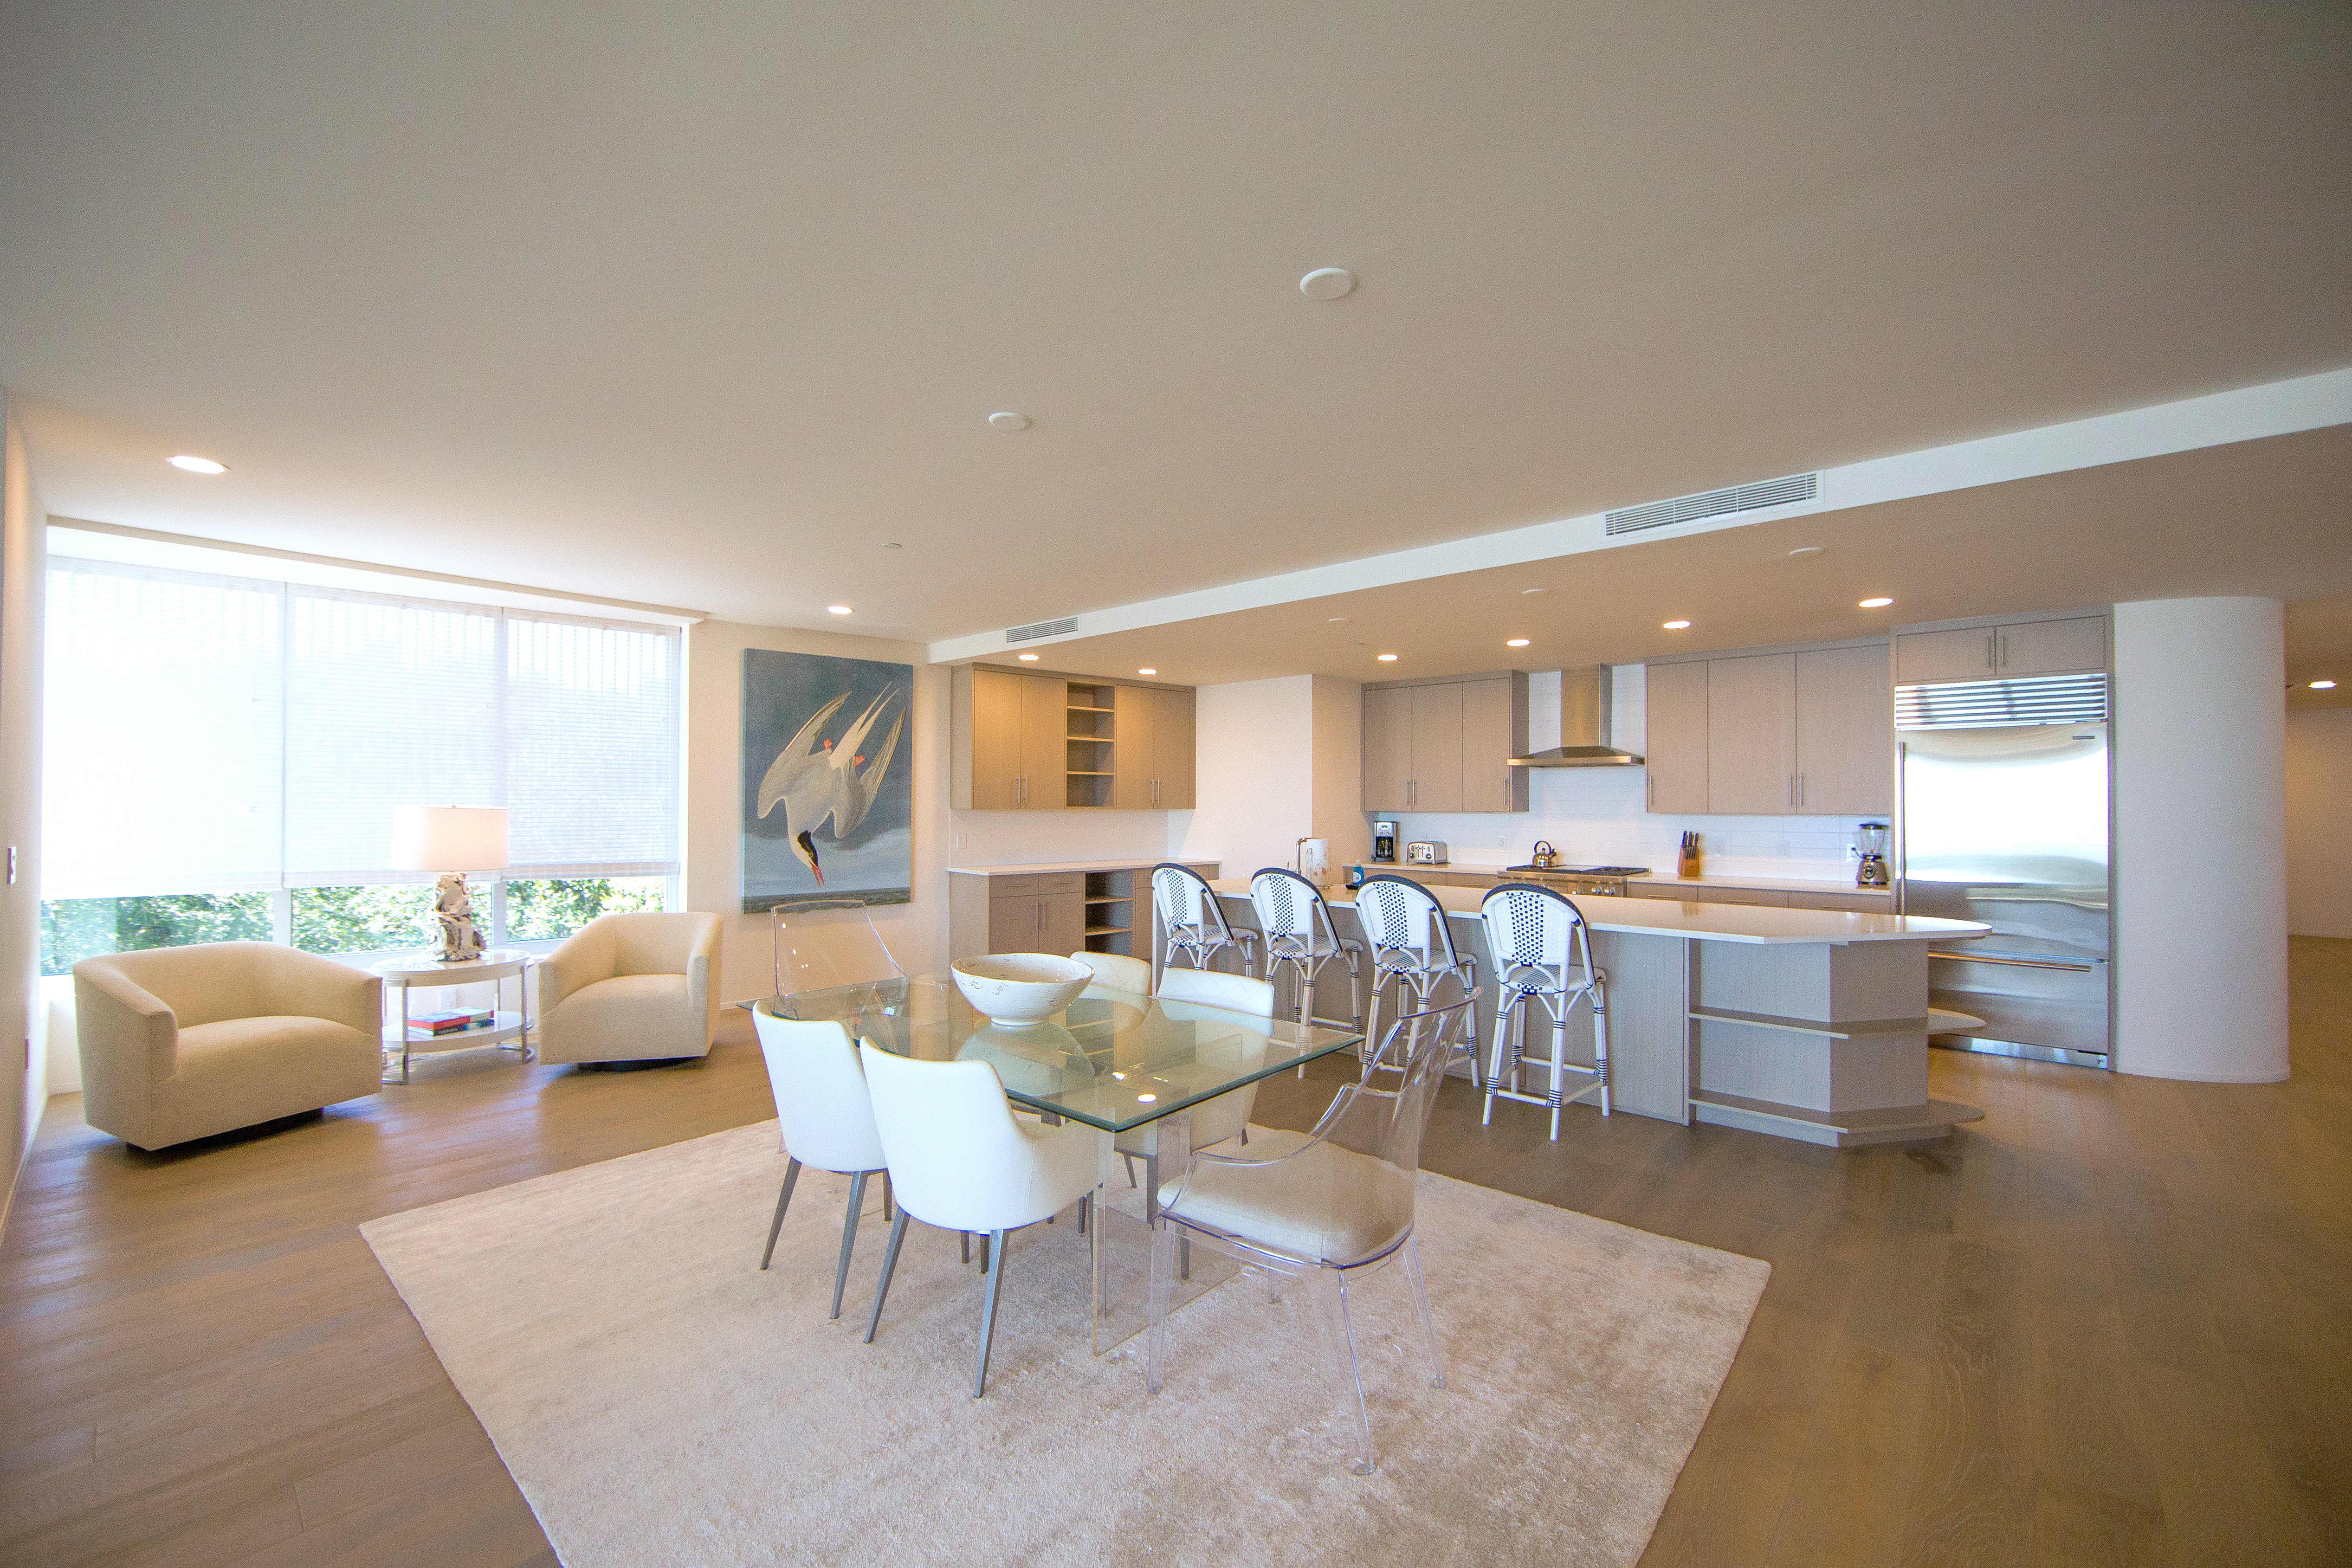 Wonderful space for entertaining your family. Bar stool seating is also available along the bar.